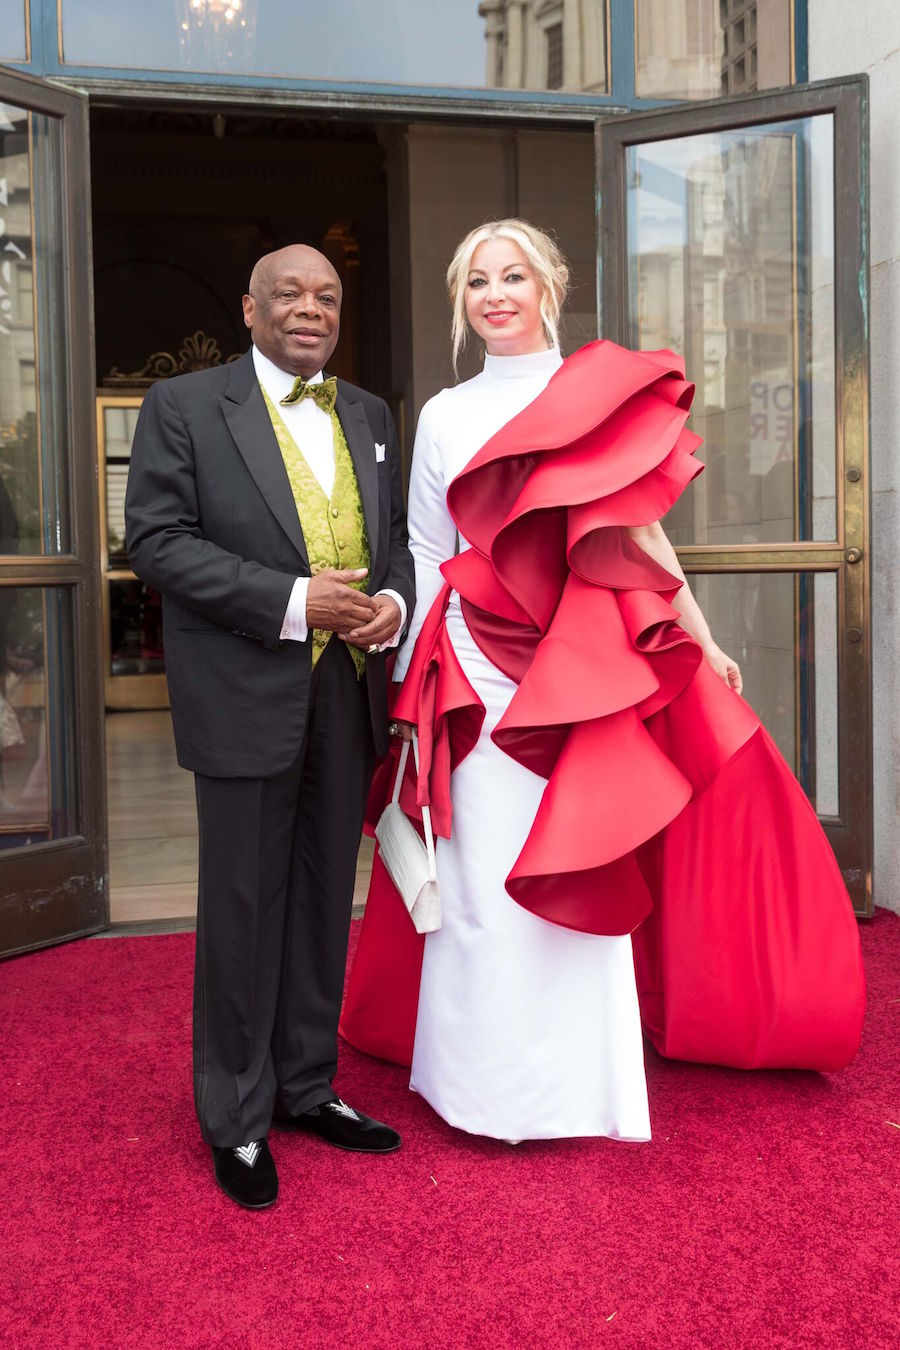 Former mayor Willie Brown and Haute Living's fashion editor-at-large, Sonya Molodetskaya at last year's opening